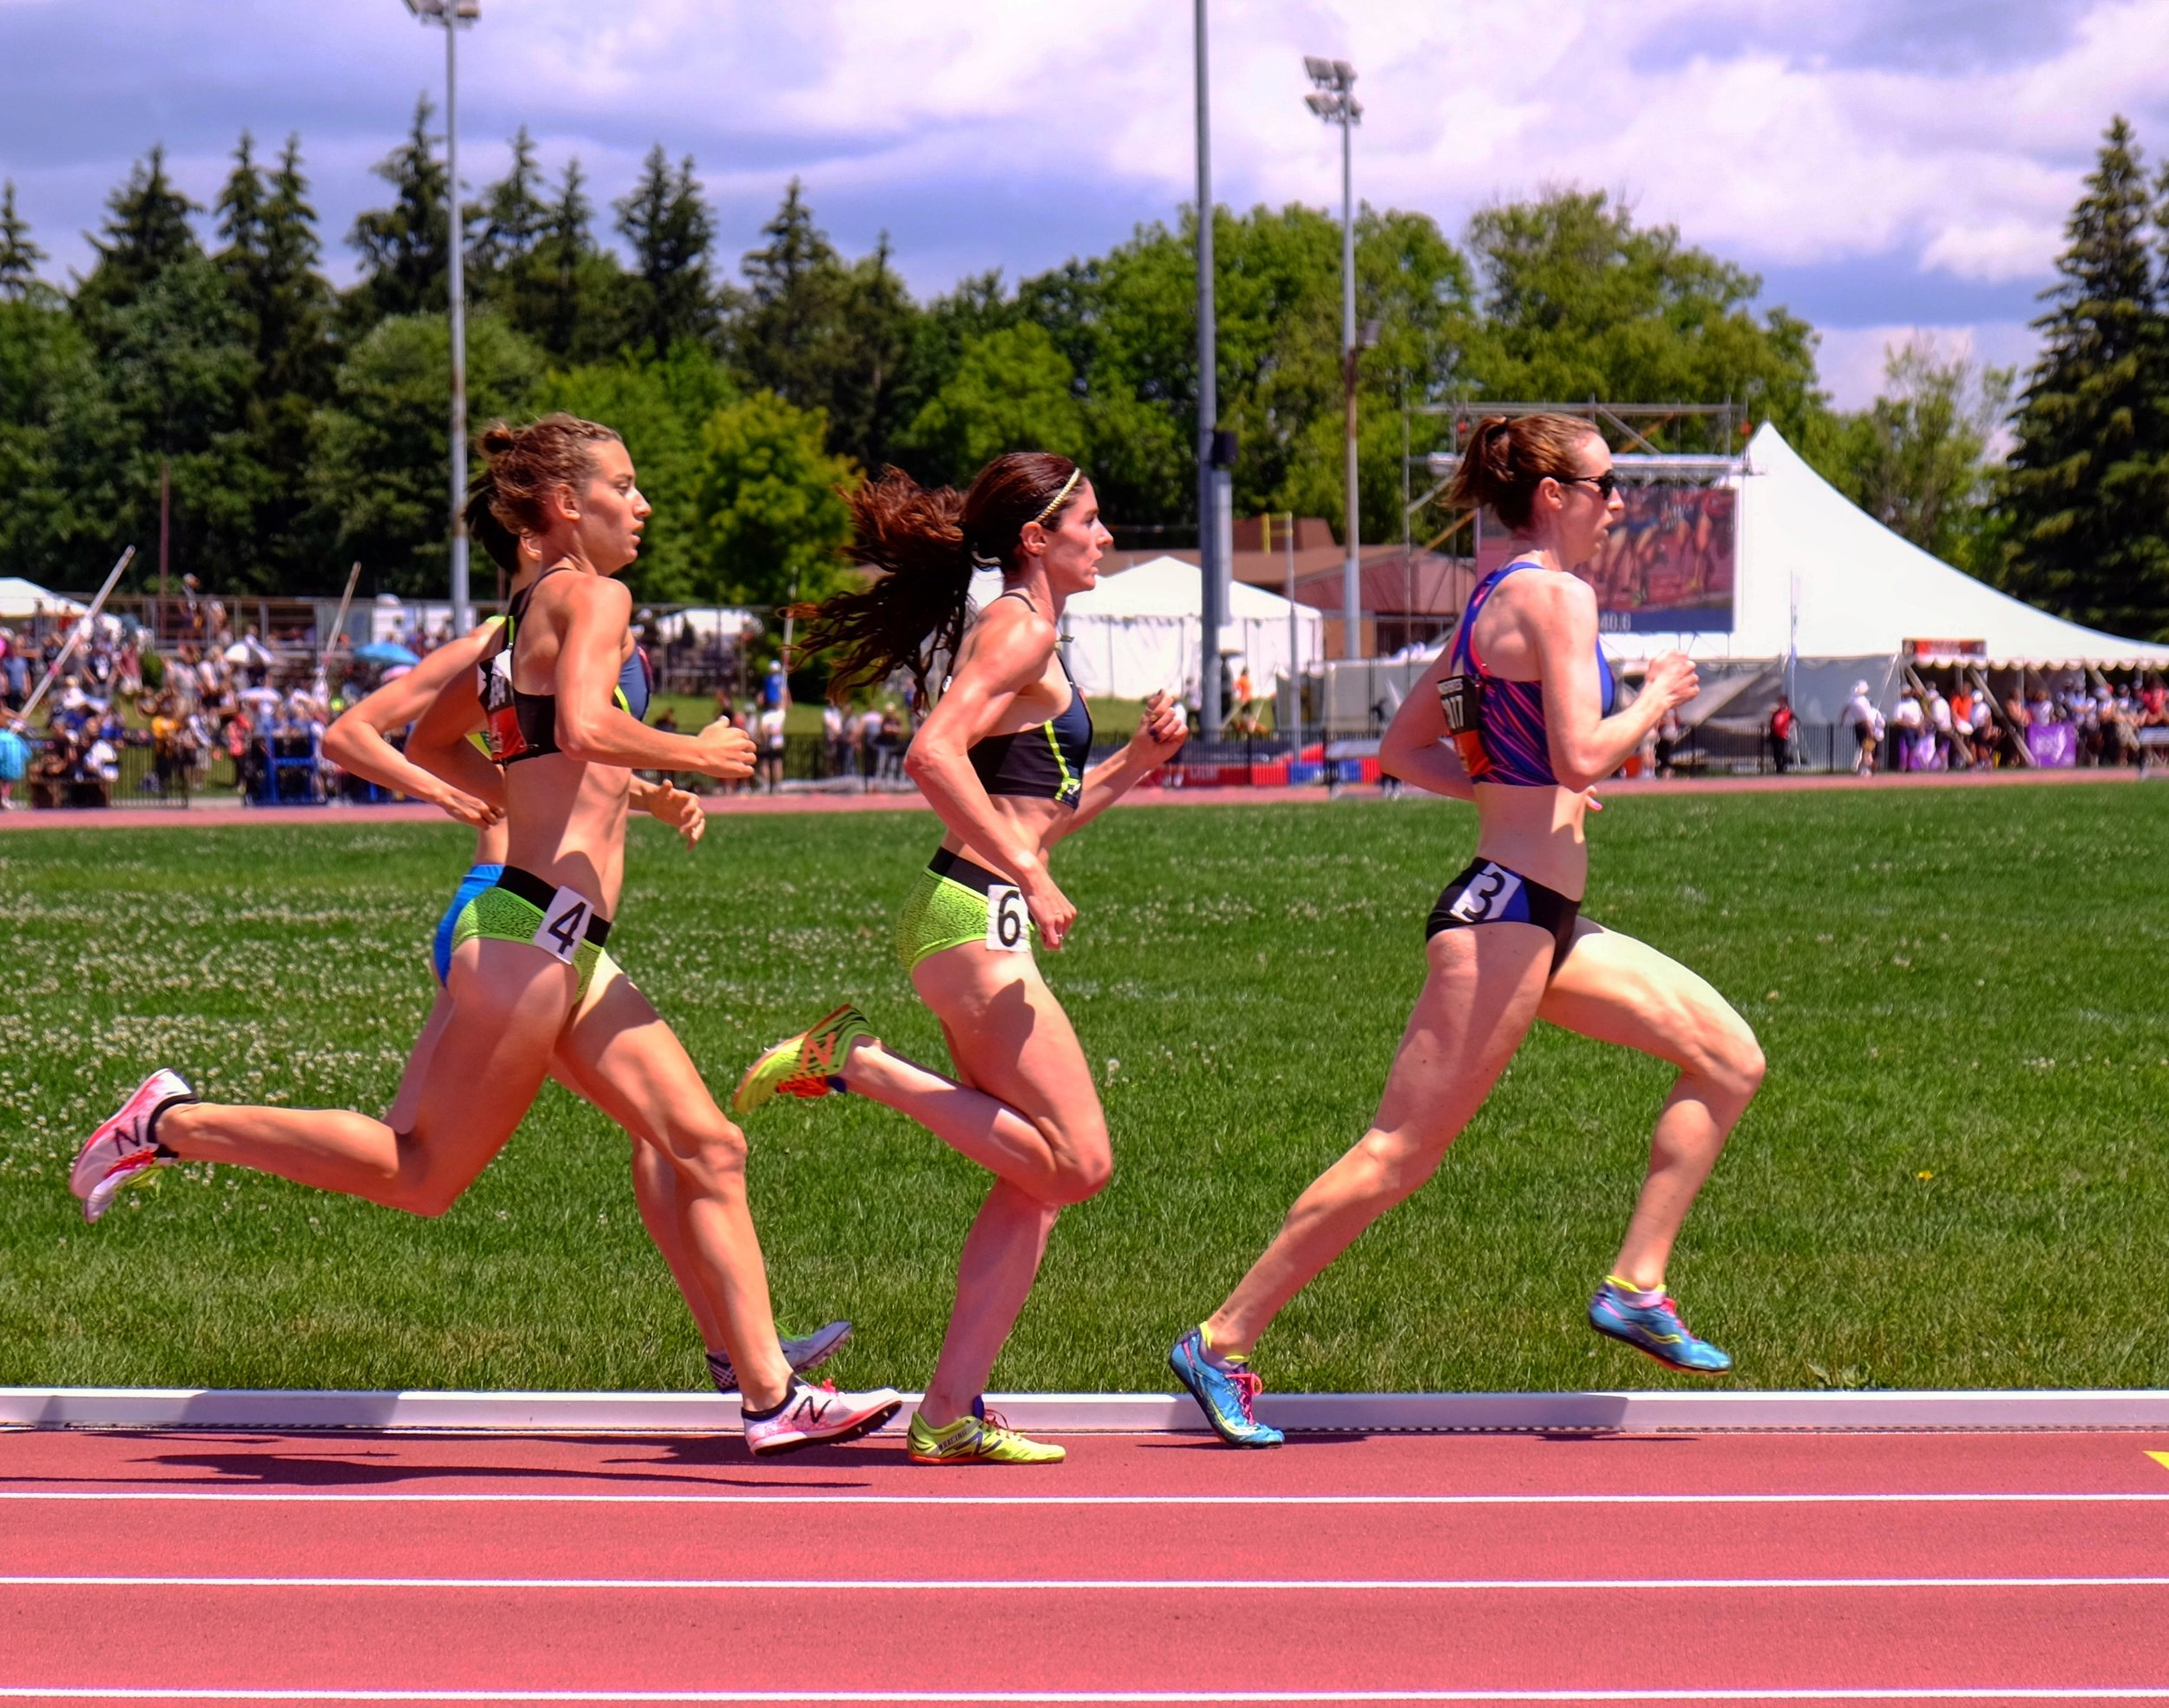 Running in the final at the 2017 Canadian Championships.